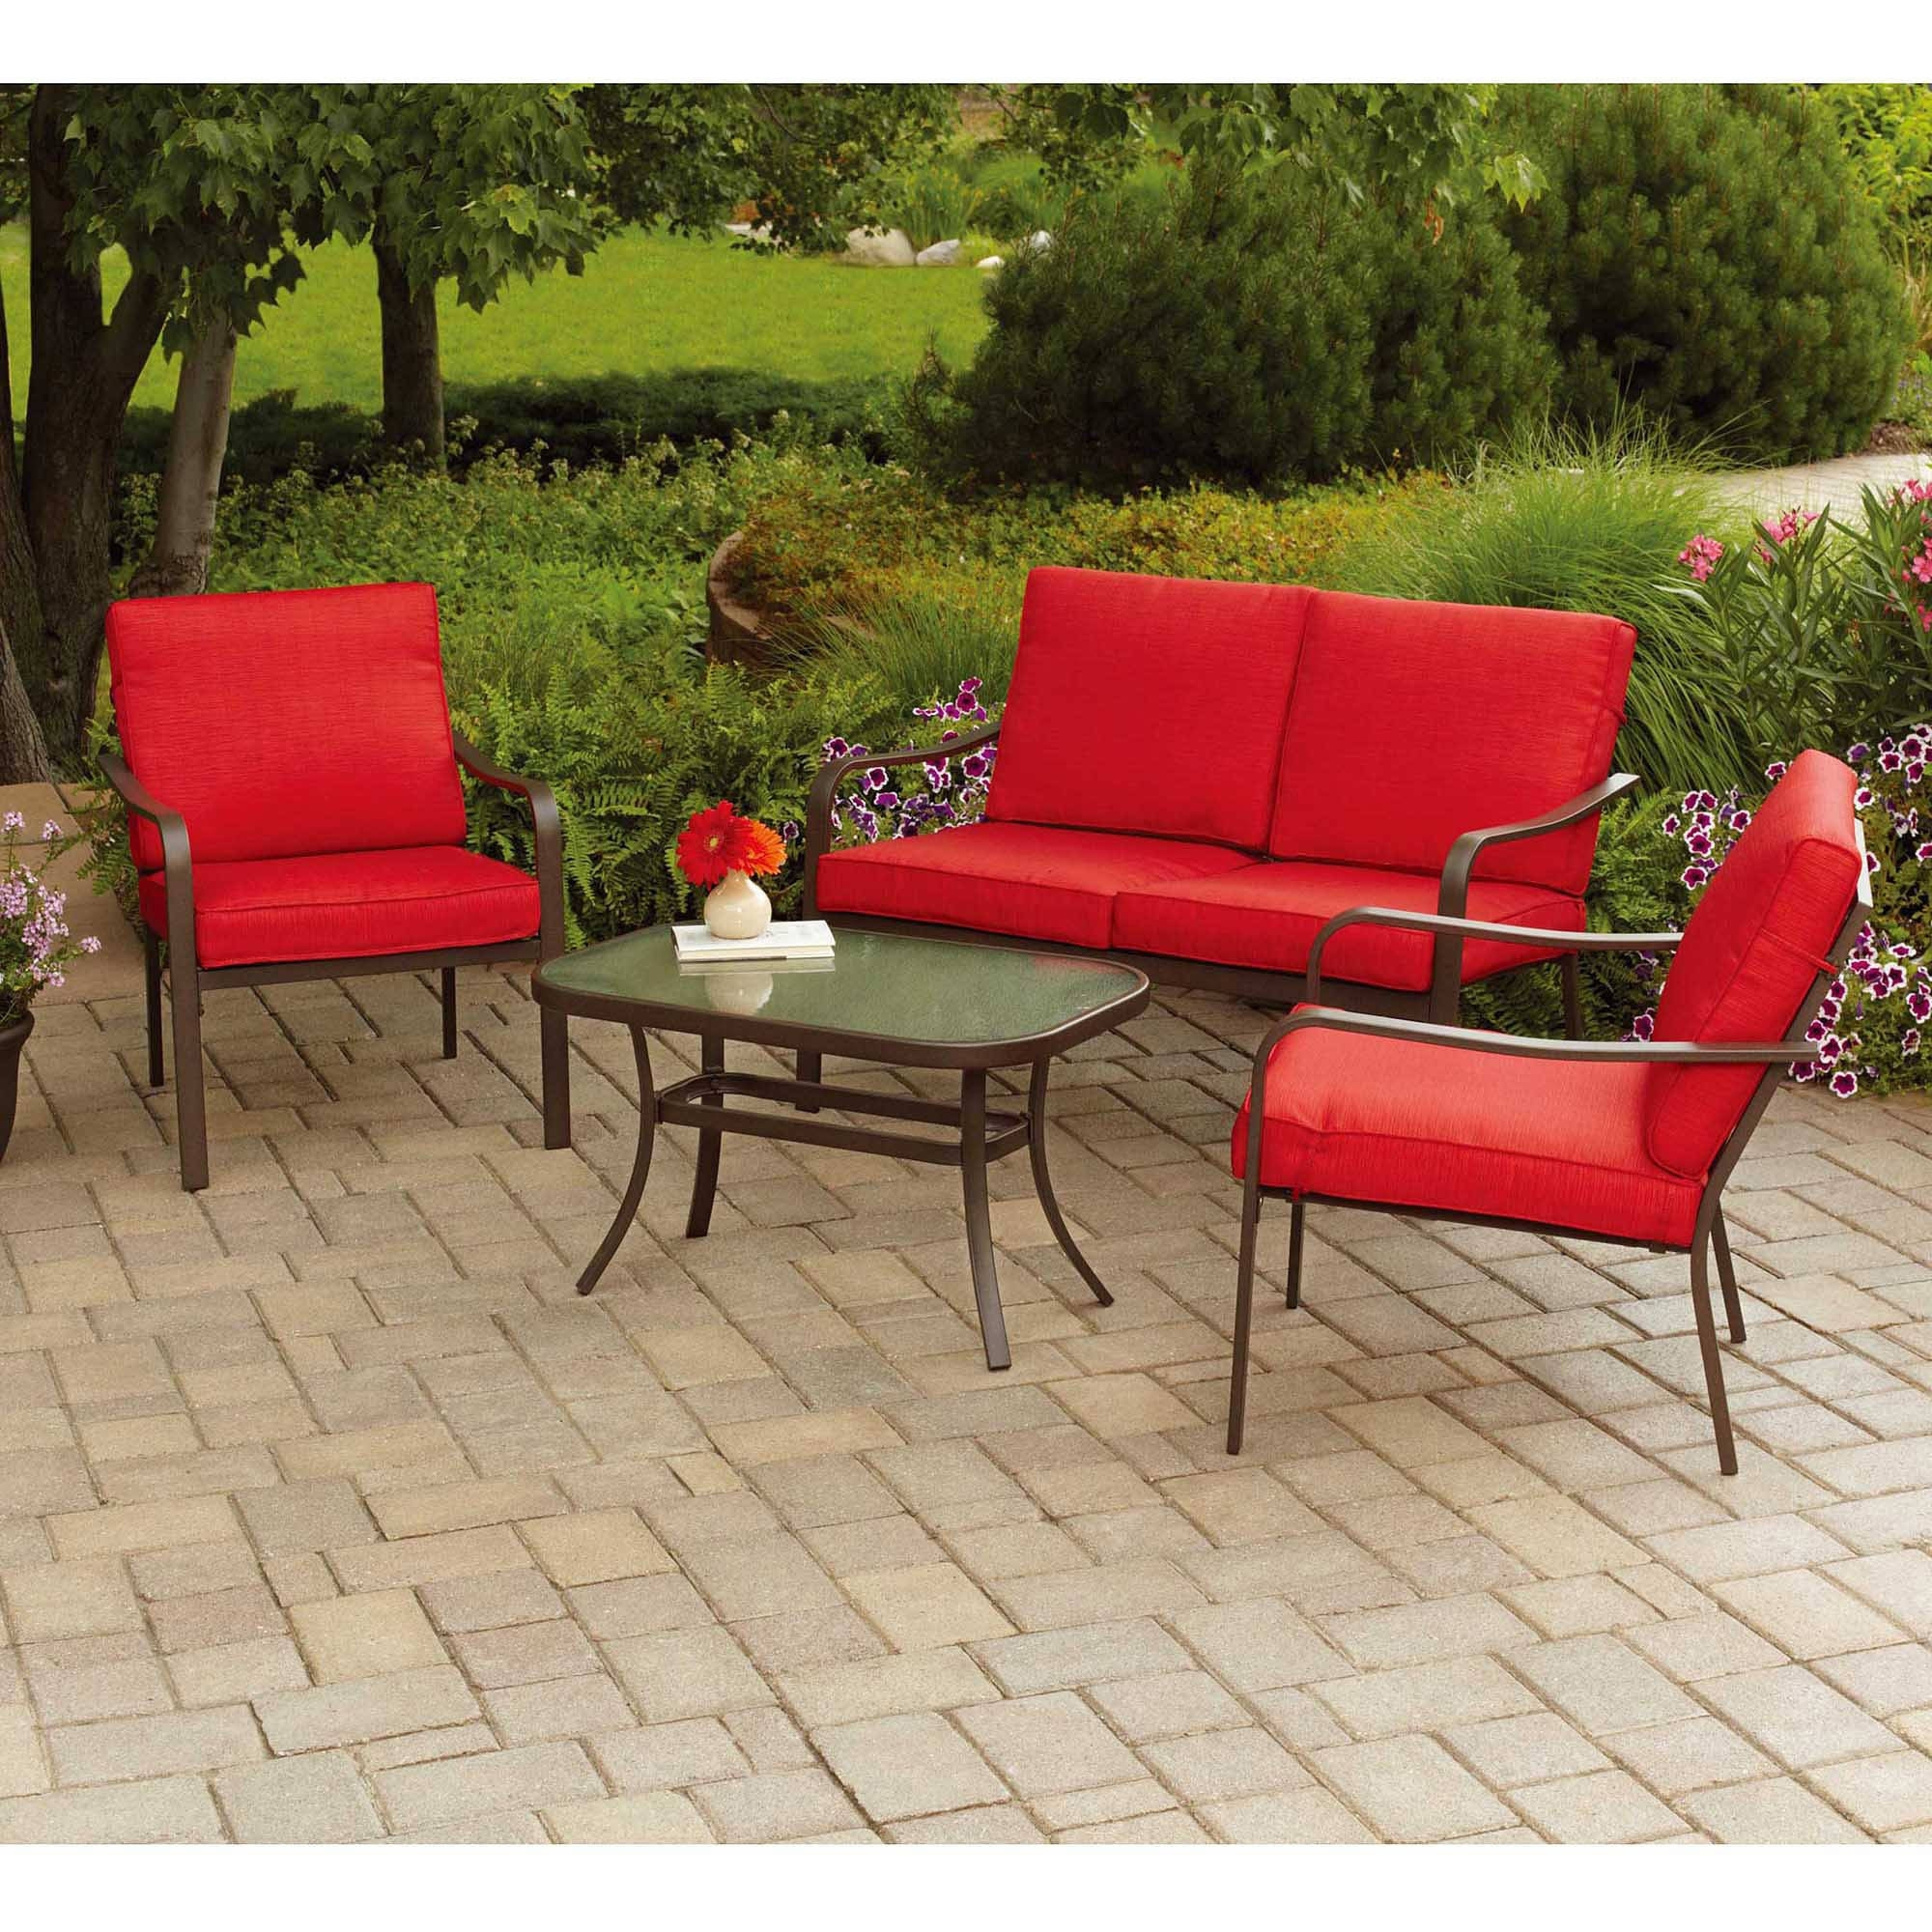 4 Piece Patio Conversation Sets In Favorite Mainstays Stanton Cushioned 4 Piece Patio Conversation Set, Seats 4 (Gallery 7 of 20)